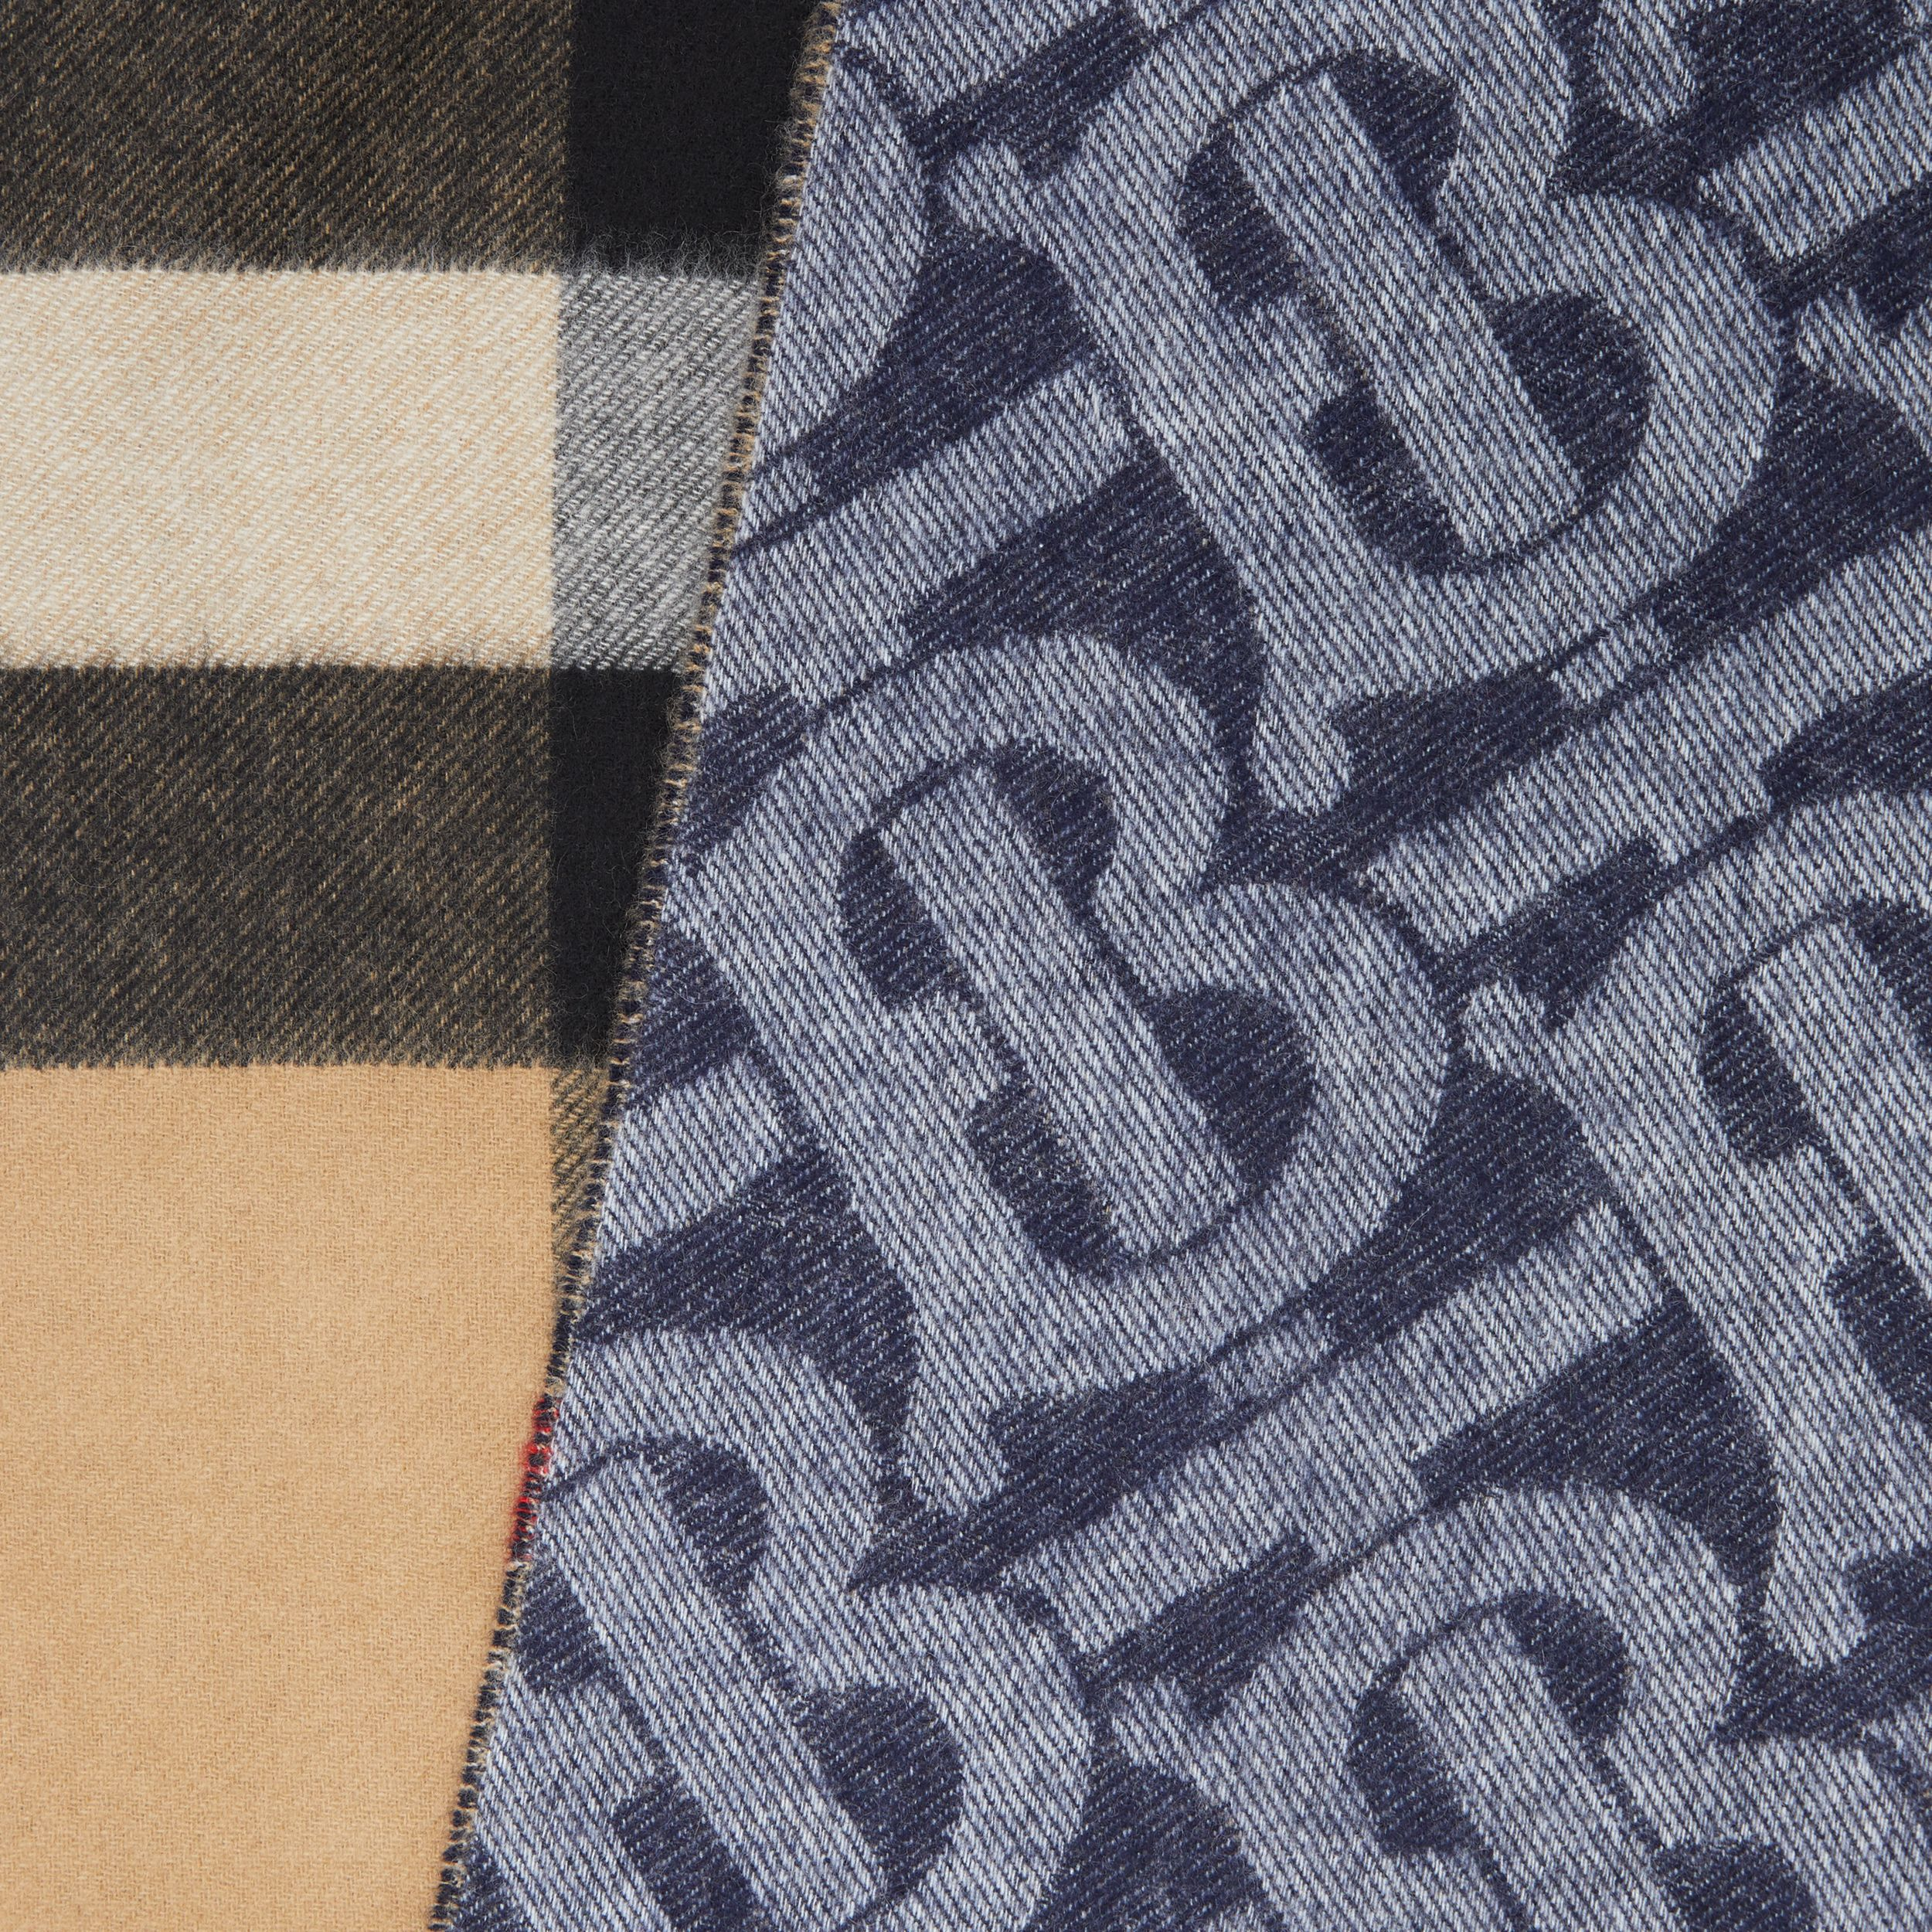 Reversible Check and Monogram Cashmere Scarf in Indigo | Burberry - 2